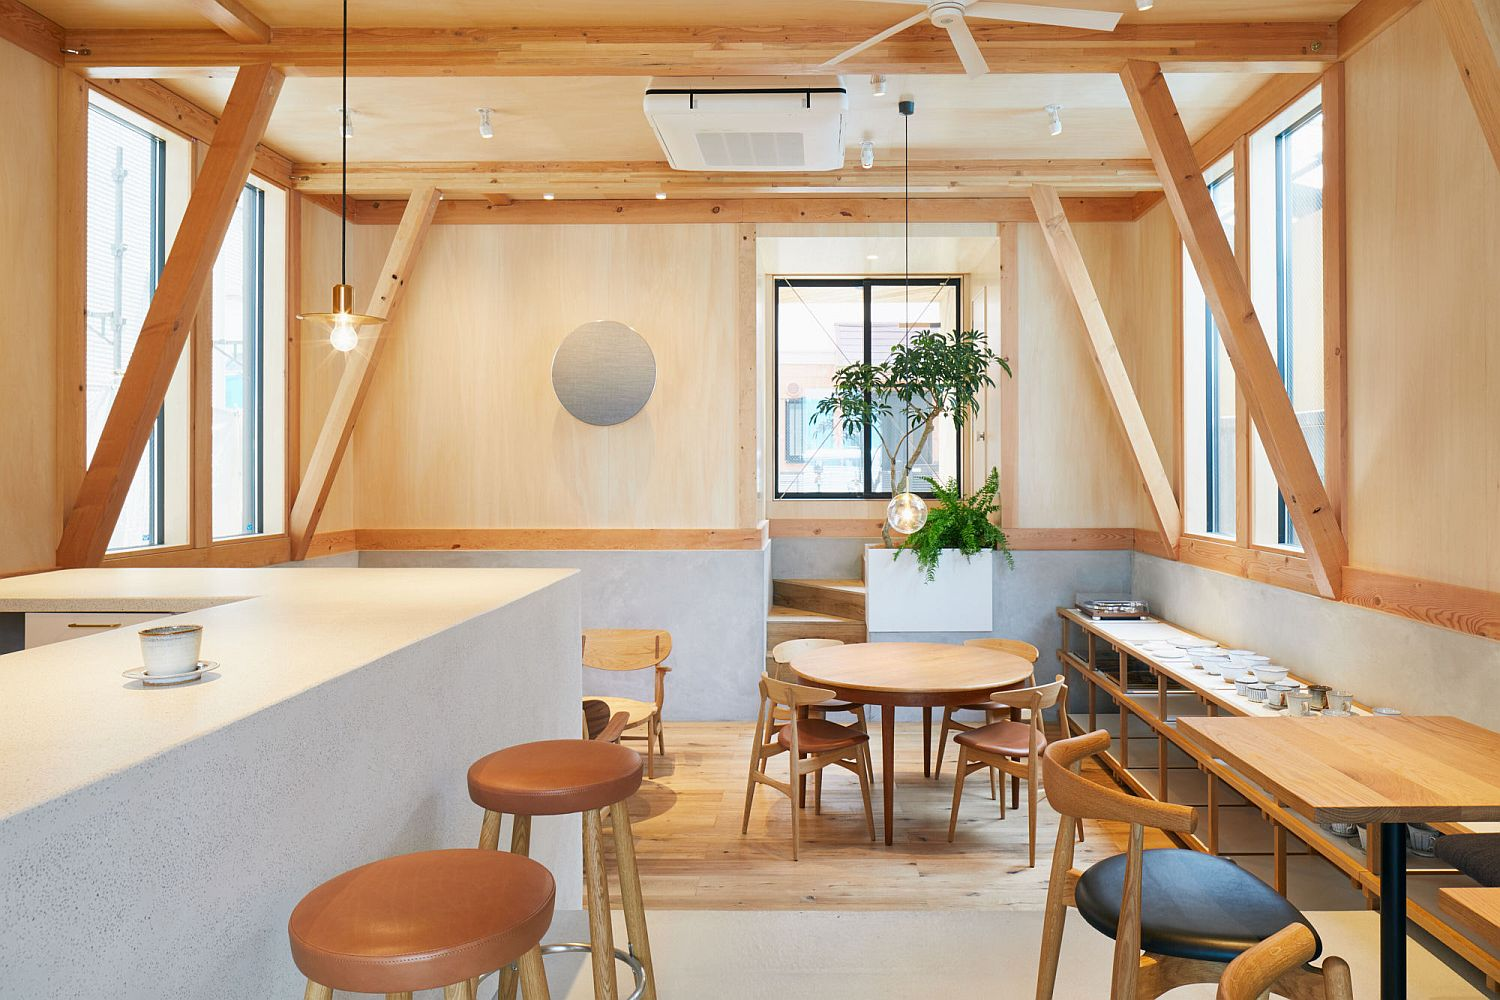 Decor-and-other-additions-in-wood-add-to-the-uniqueness-of-the-cafe